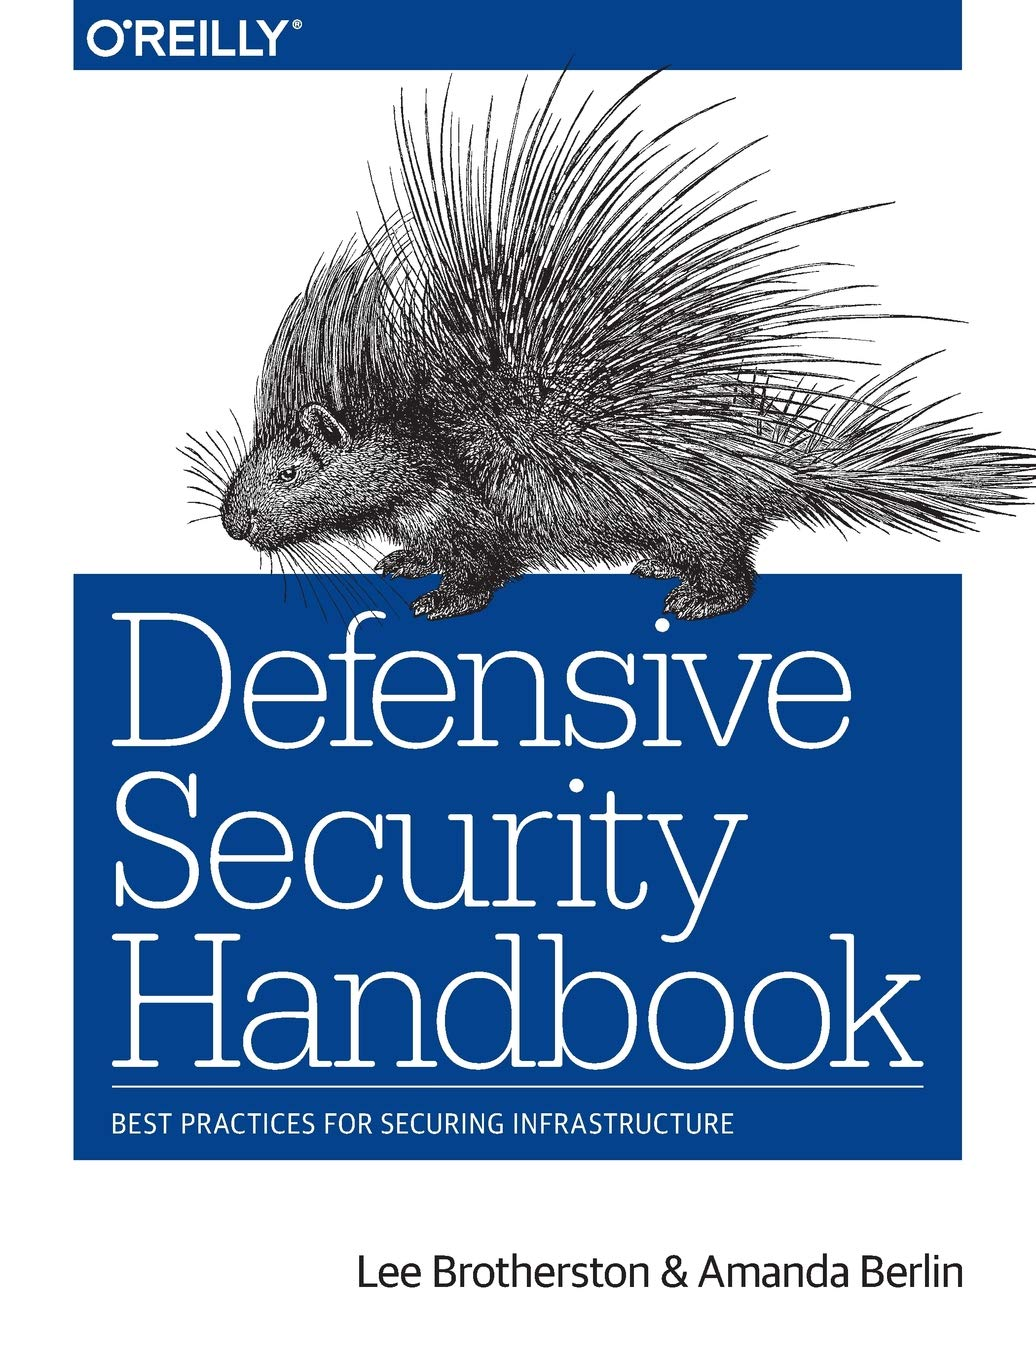 Image OfDefensive Security Handbook: Best Practices For Securing Infrastructure